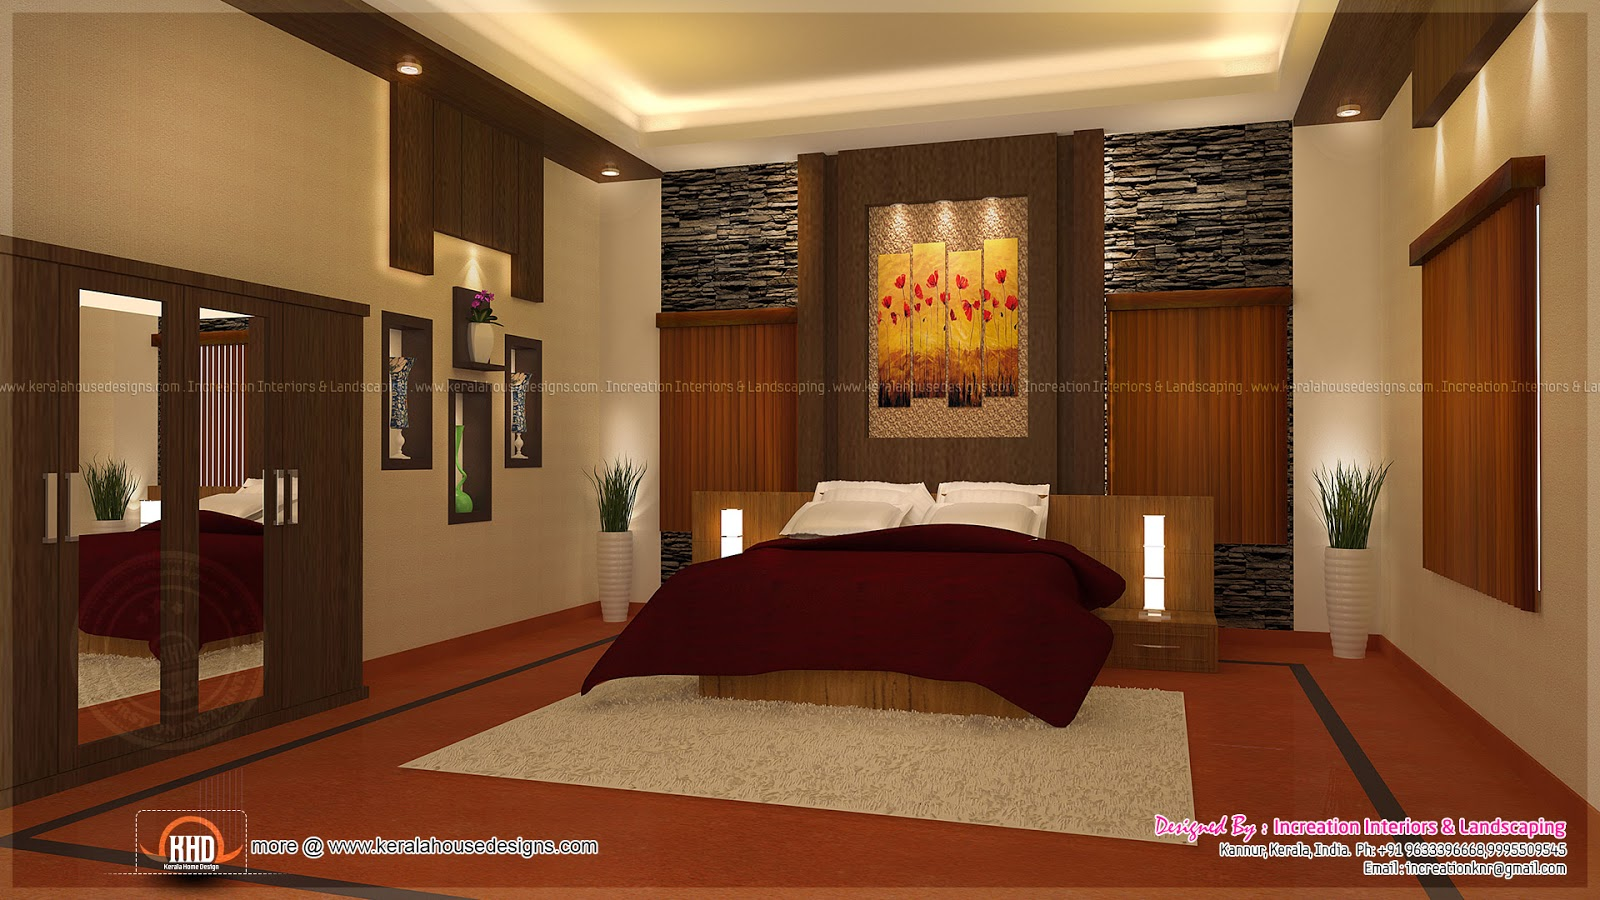 Master bedroom interior for 3 bedroom house interior design